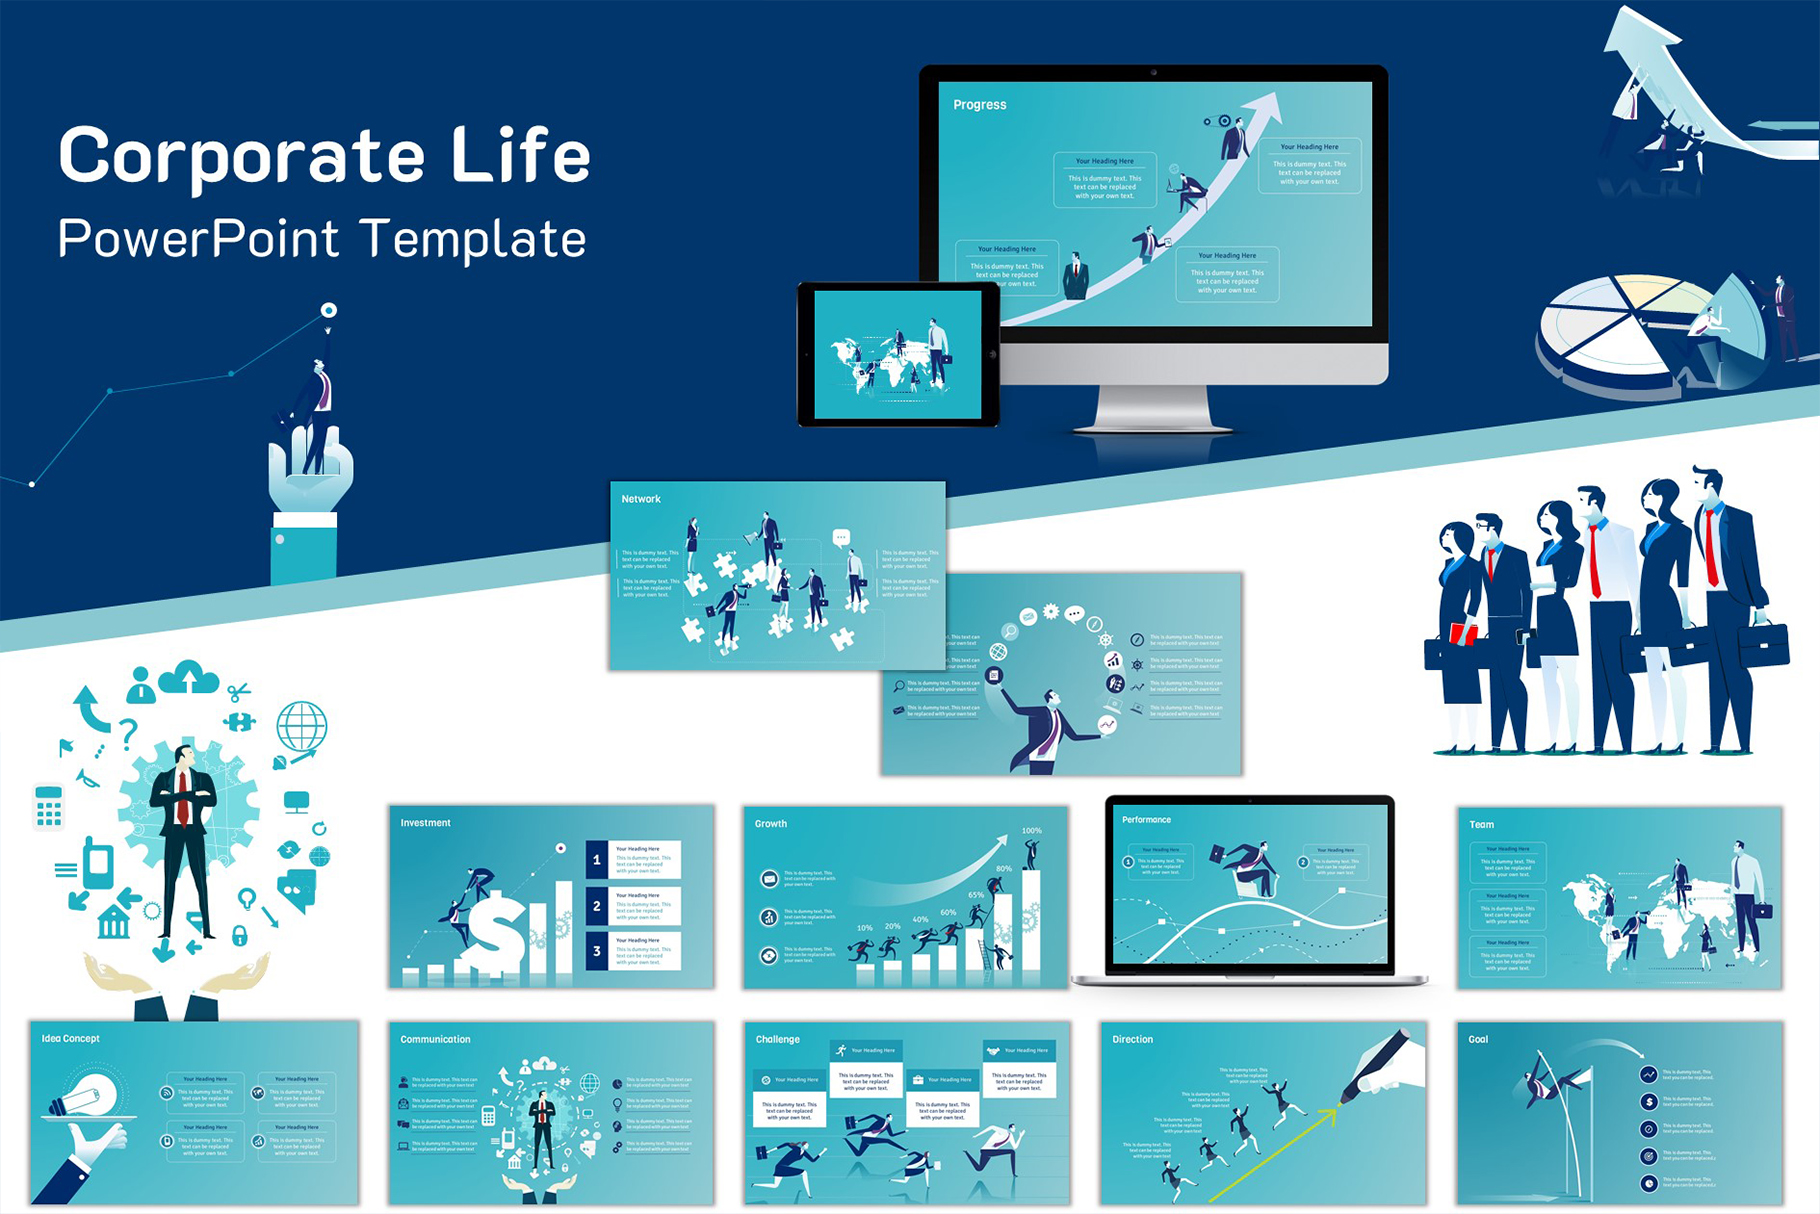 Corporate Life PowerPoint Template example image 1